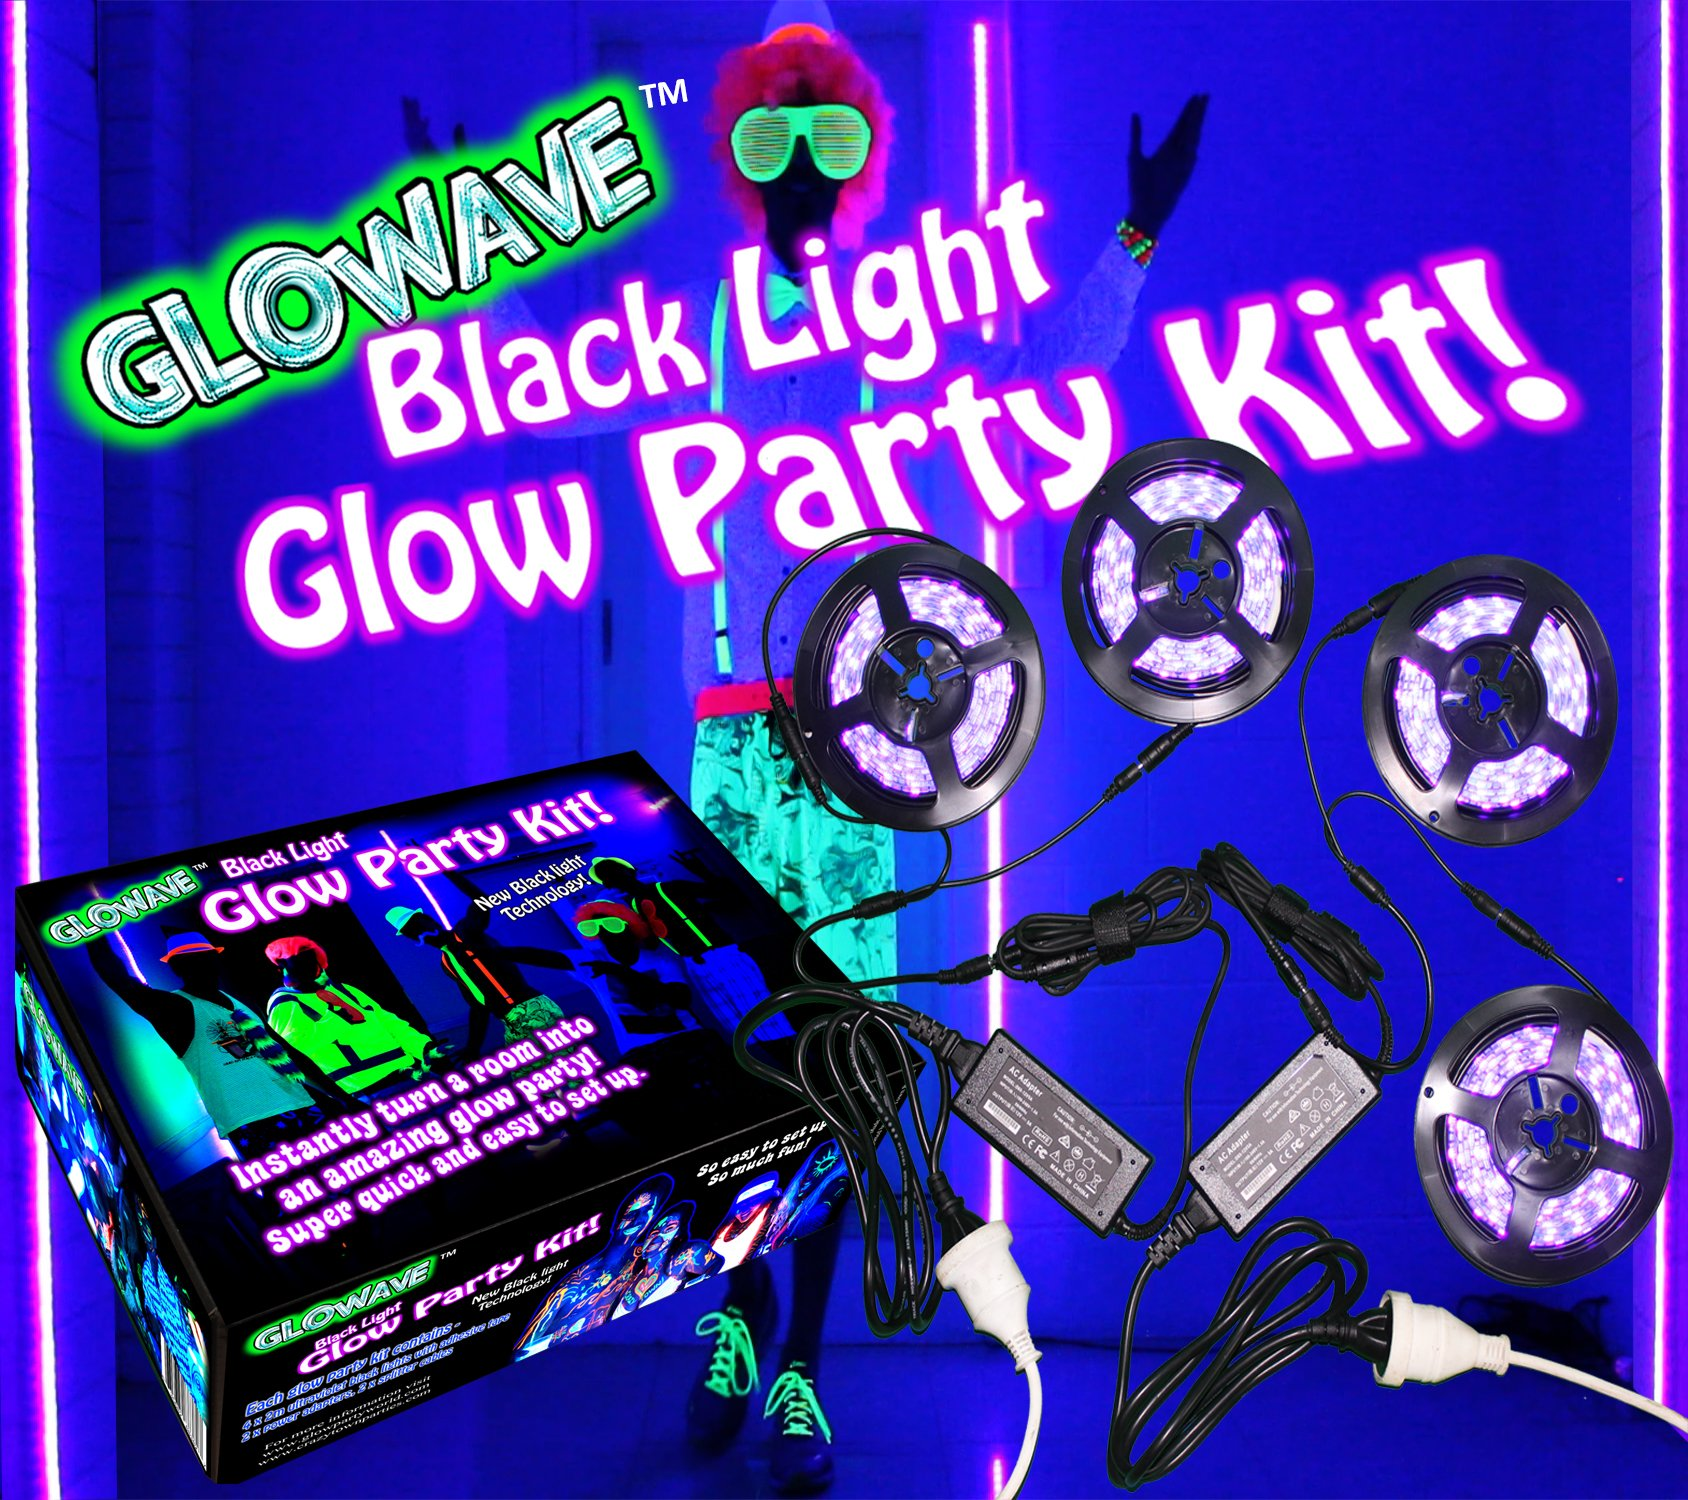 Glowave Complete Glow Party Black Light Kit. Contains 4 x 6.5ft long UV Ultraviolet Black Lights LED (26ft total). With 2 power adapters and splitter cables. For neon glow parties